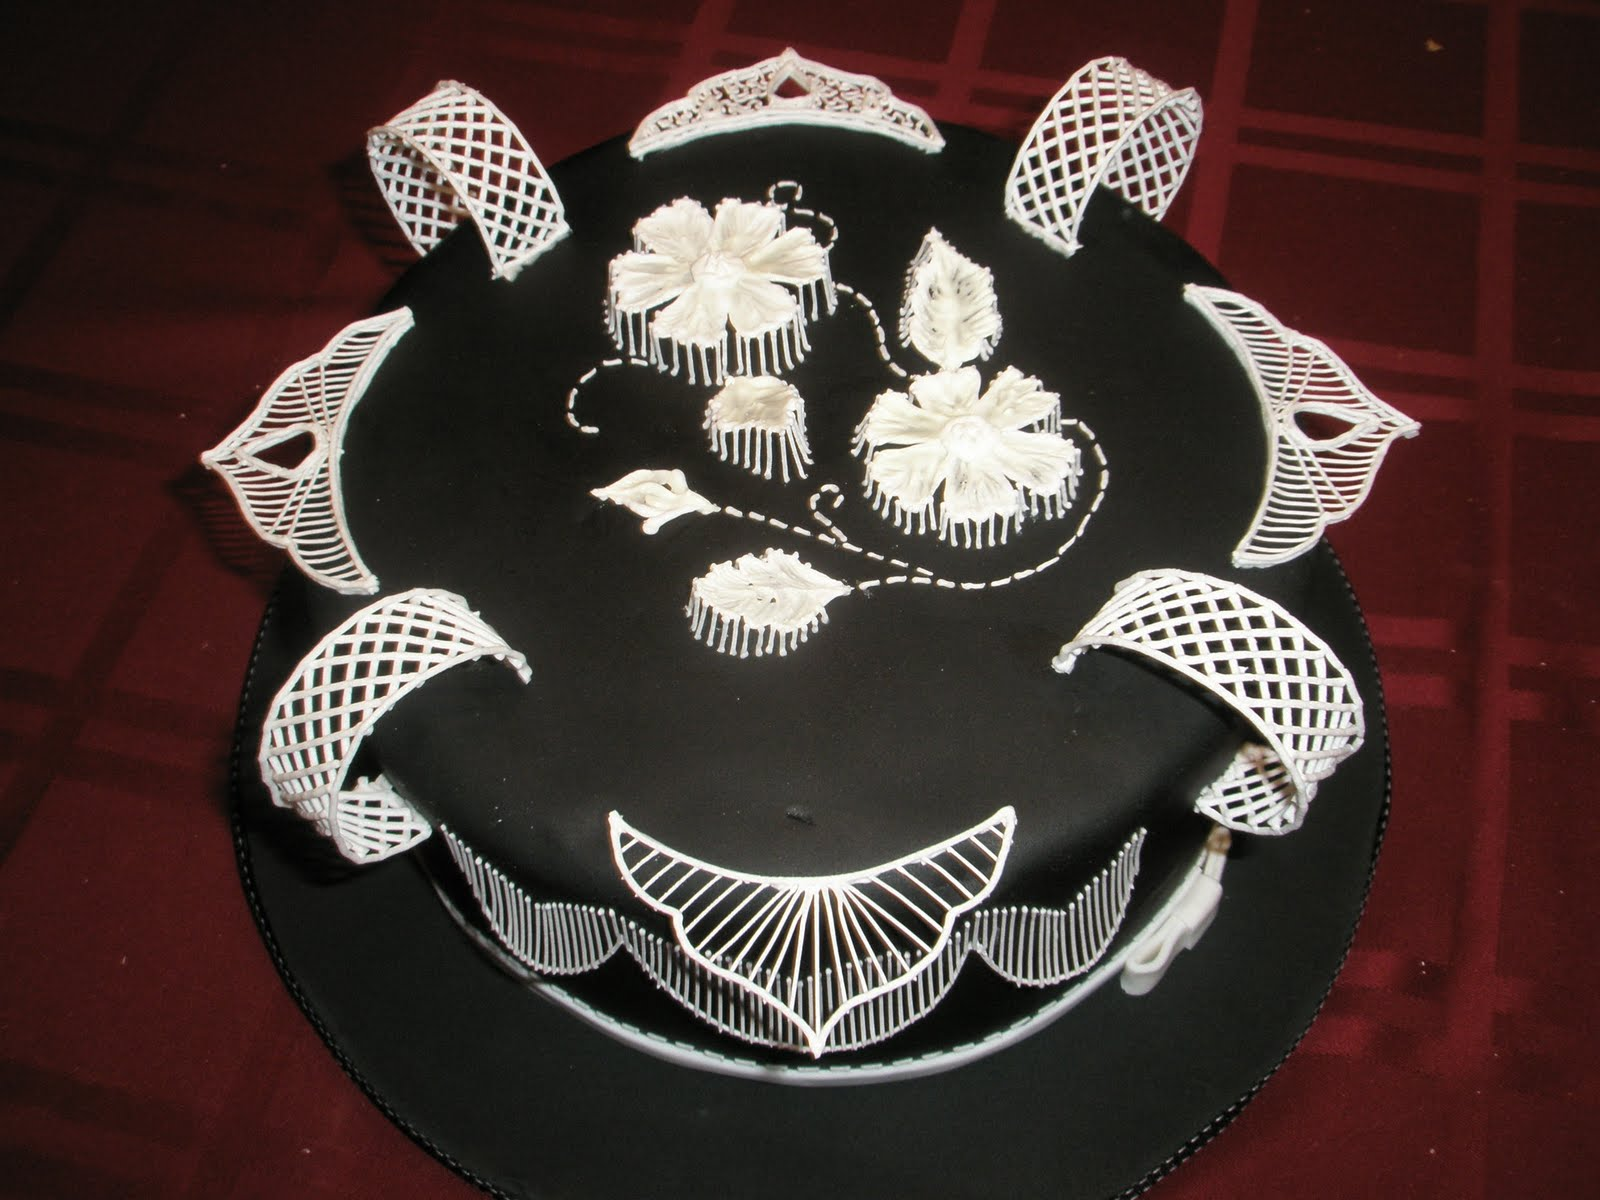 royal icing decorations wedding cake the cake engineer defying gravity royal icing style 19390